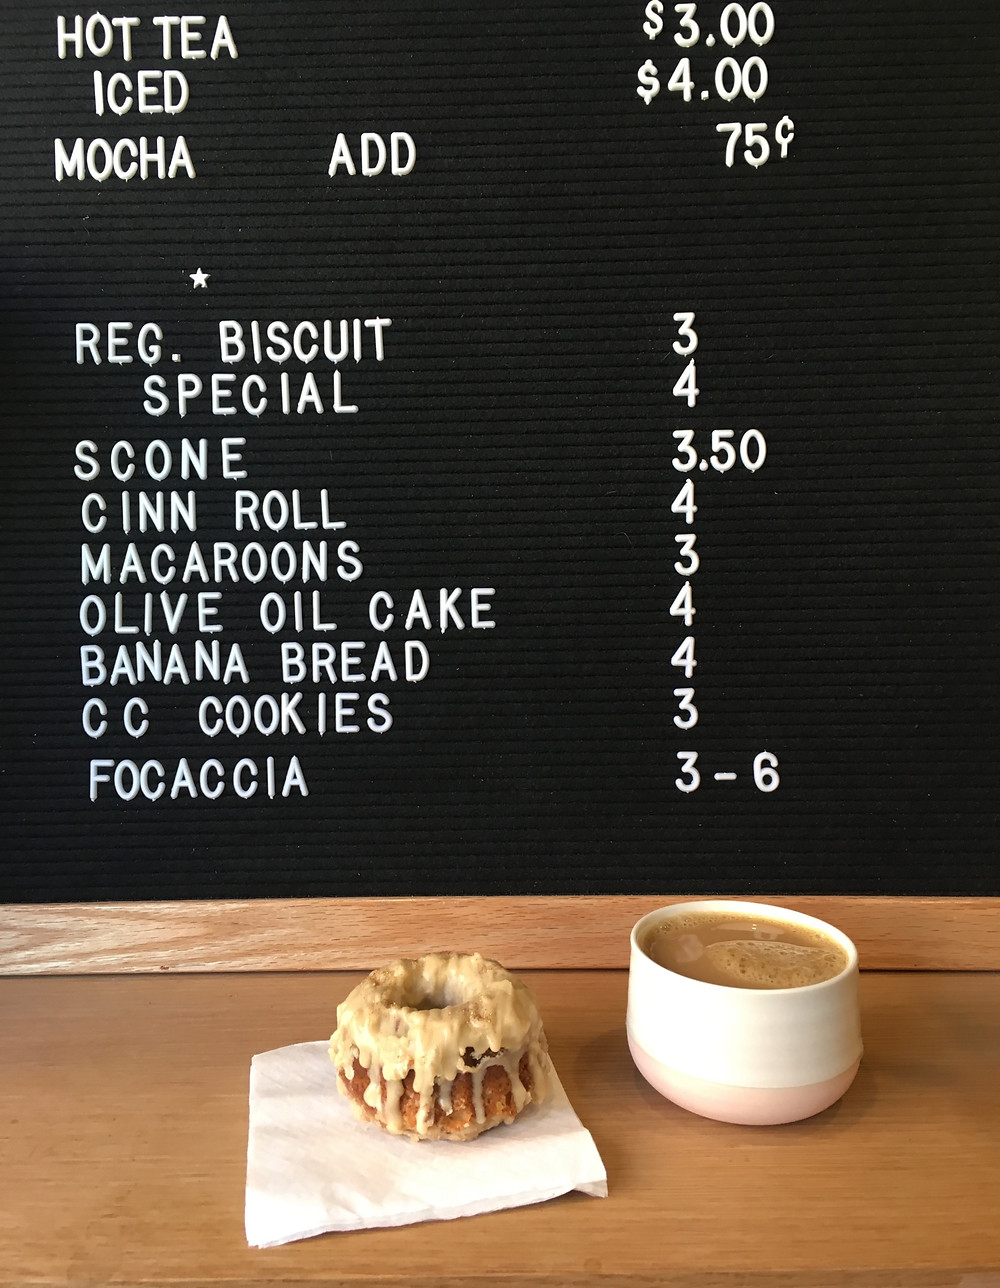 Super Nice Bakery and Cafe in East Harlem is run by Danny Macaroon